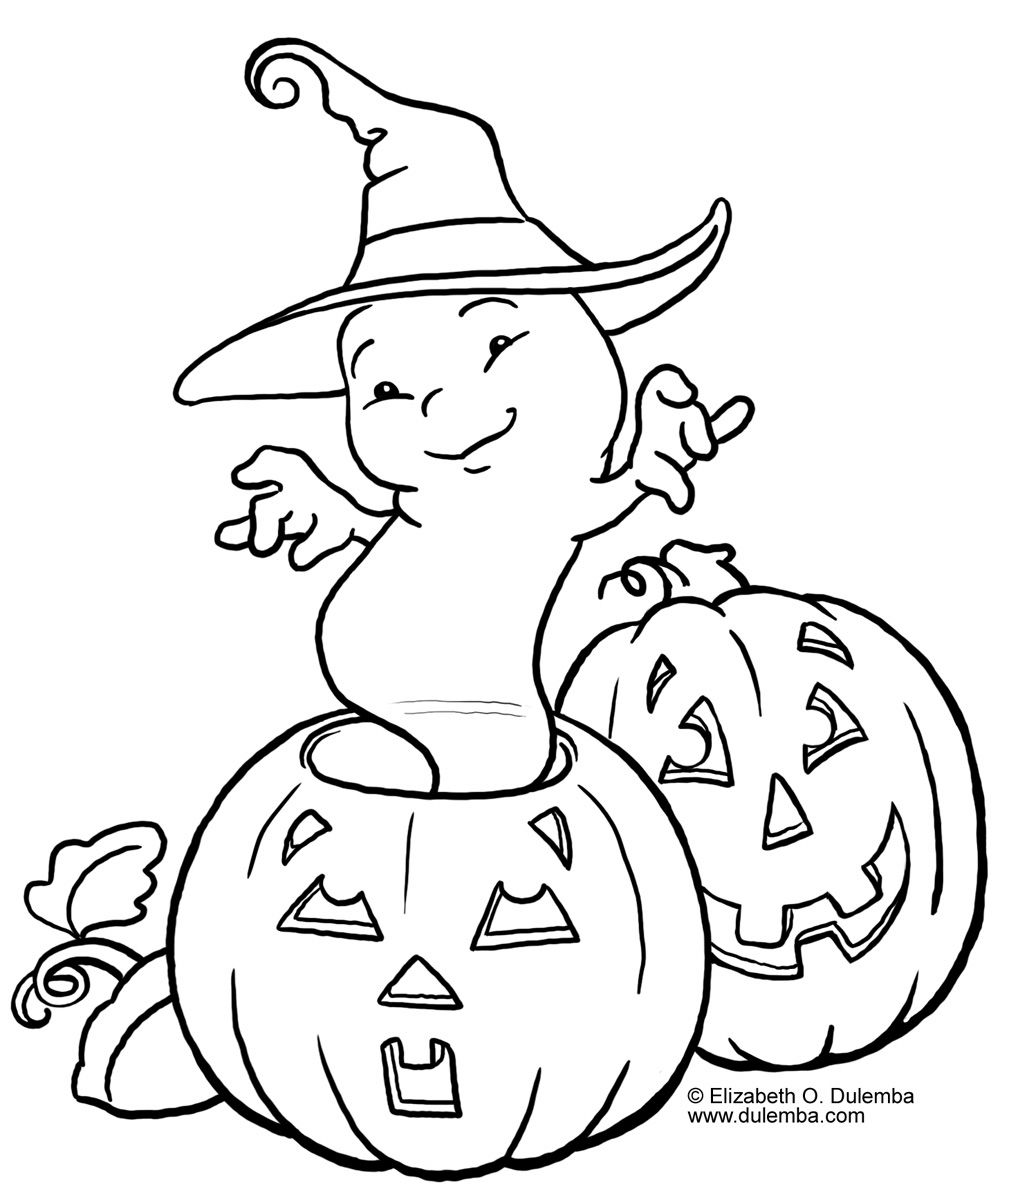 Pin By Colee Kyrychok On Holiday Magic Halloween Coloring Book Halloween Coloring Pages Halloween Coloring Sheets